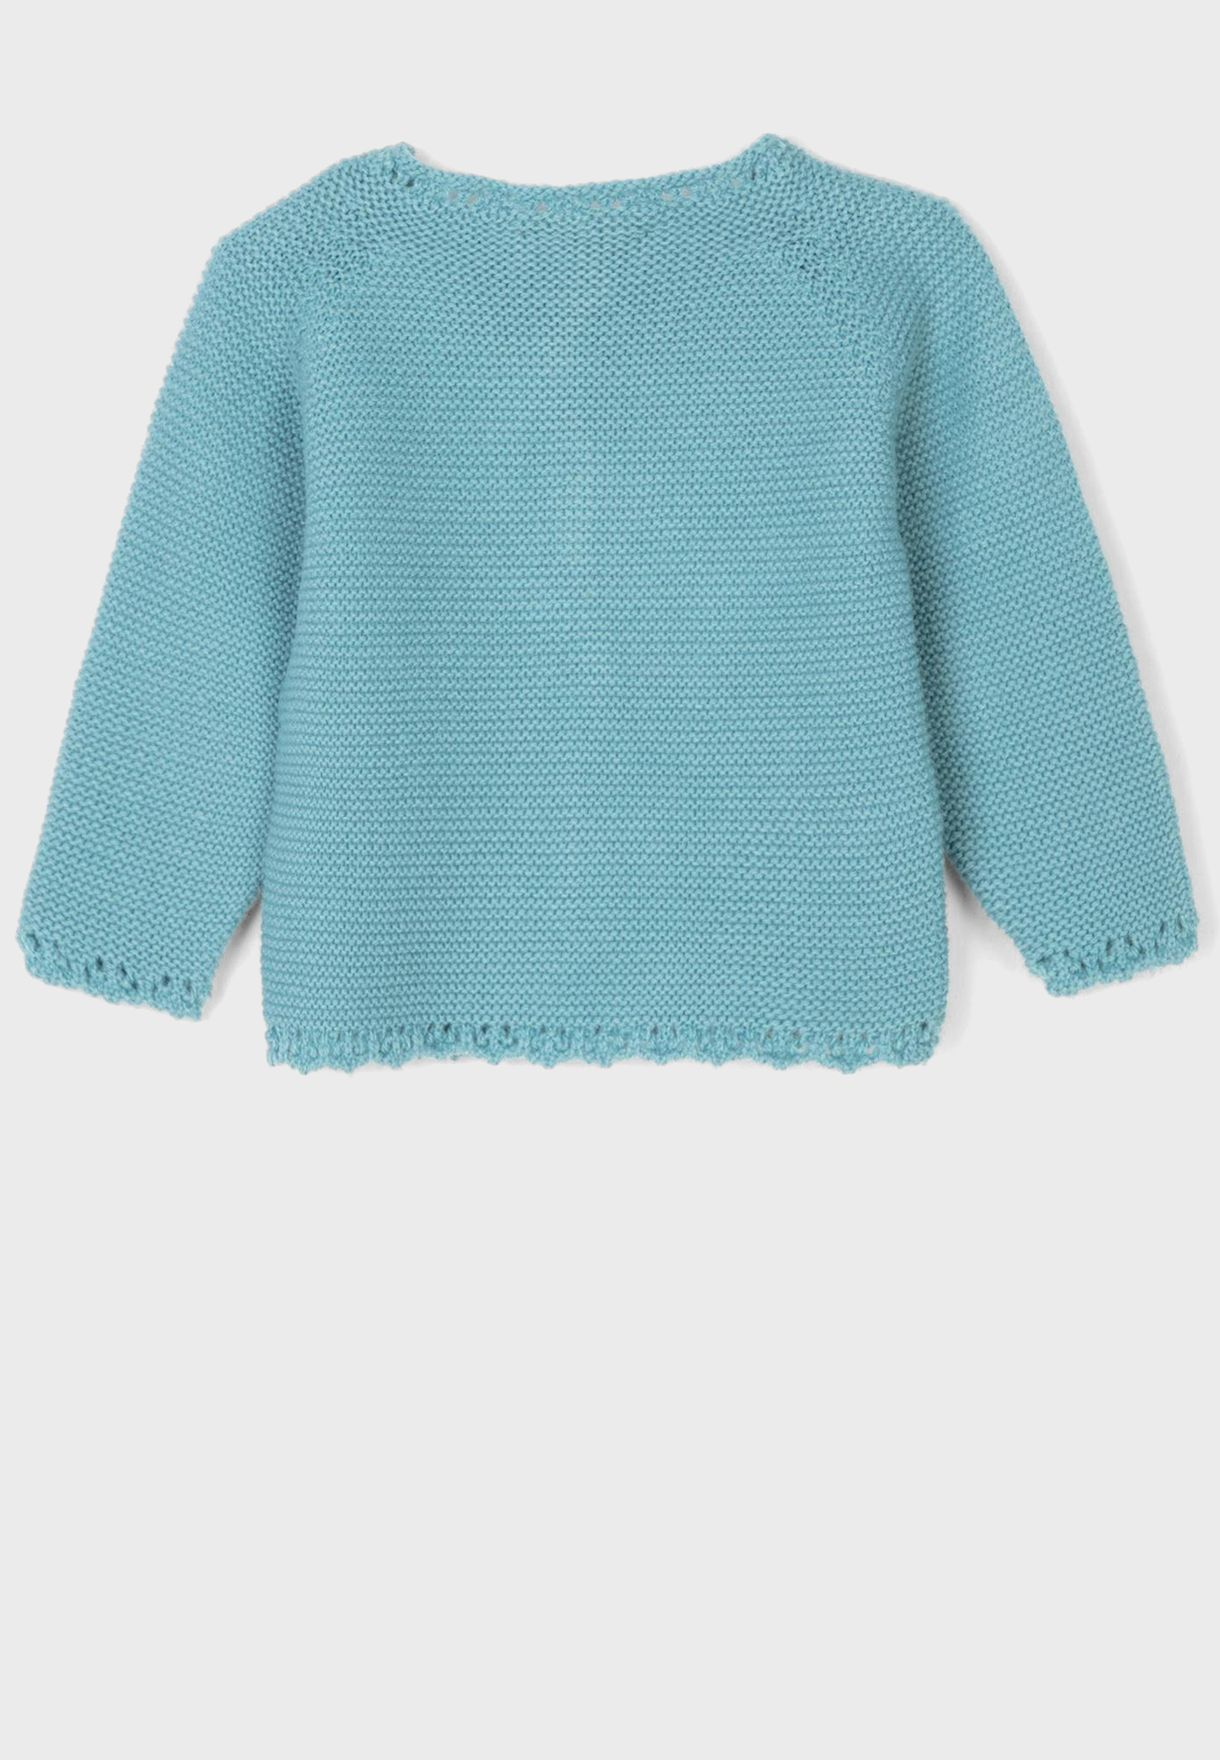 Infant Knitted Cardigan